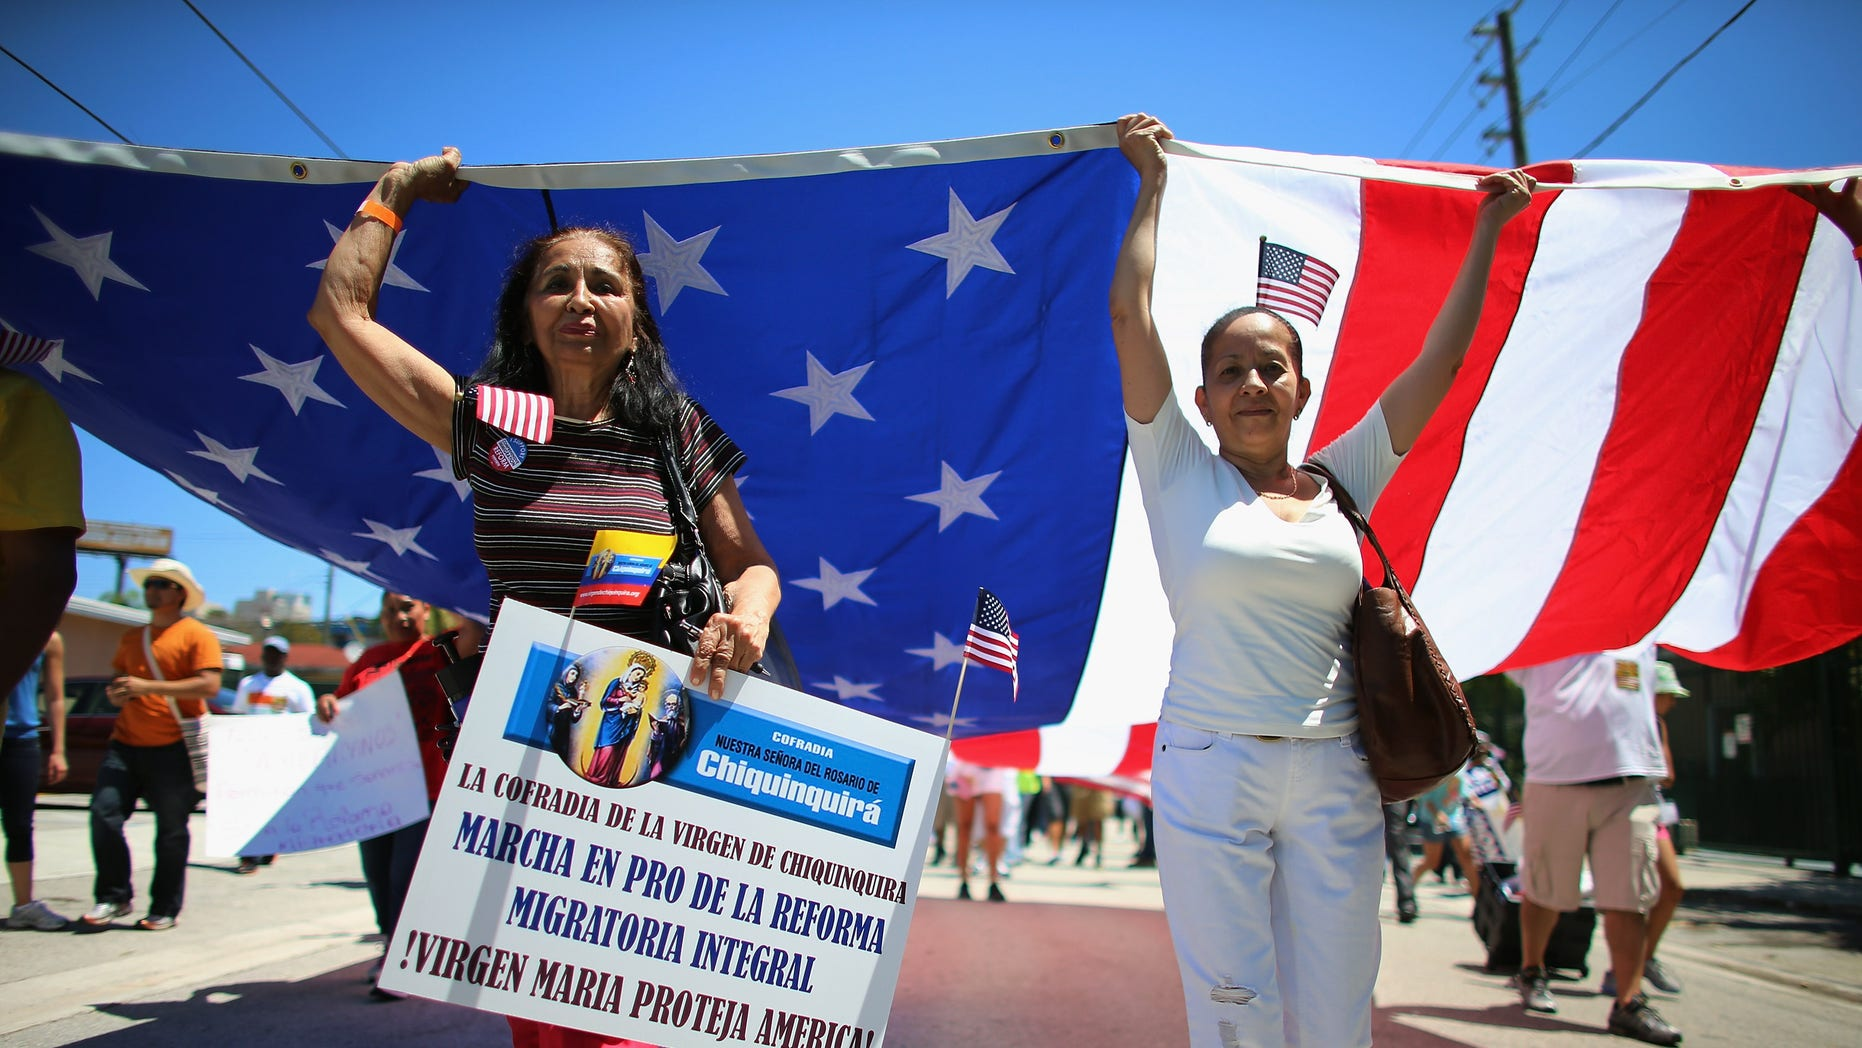 MIAMI, FL - APRIL 06:  People participate in a protest march that organizers said was an attempt to get the U.S. Congress to say yes to immigration reform on April 6, 2013 in Miami, Florida. The marchers were calling for a new immigration system with a real and inclusive path to citizenship for 11 million aspiring Americans, and to keep families together.  (Photo by Joe Raedle/Getty Images)